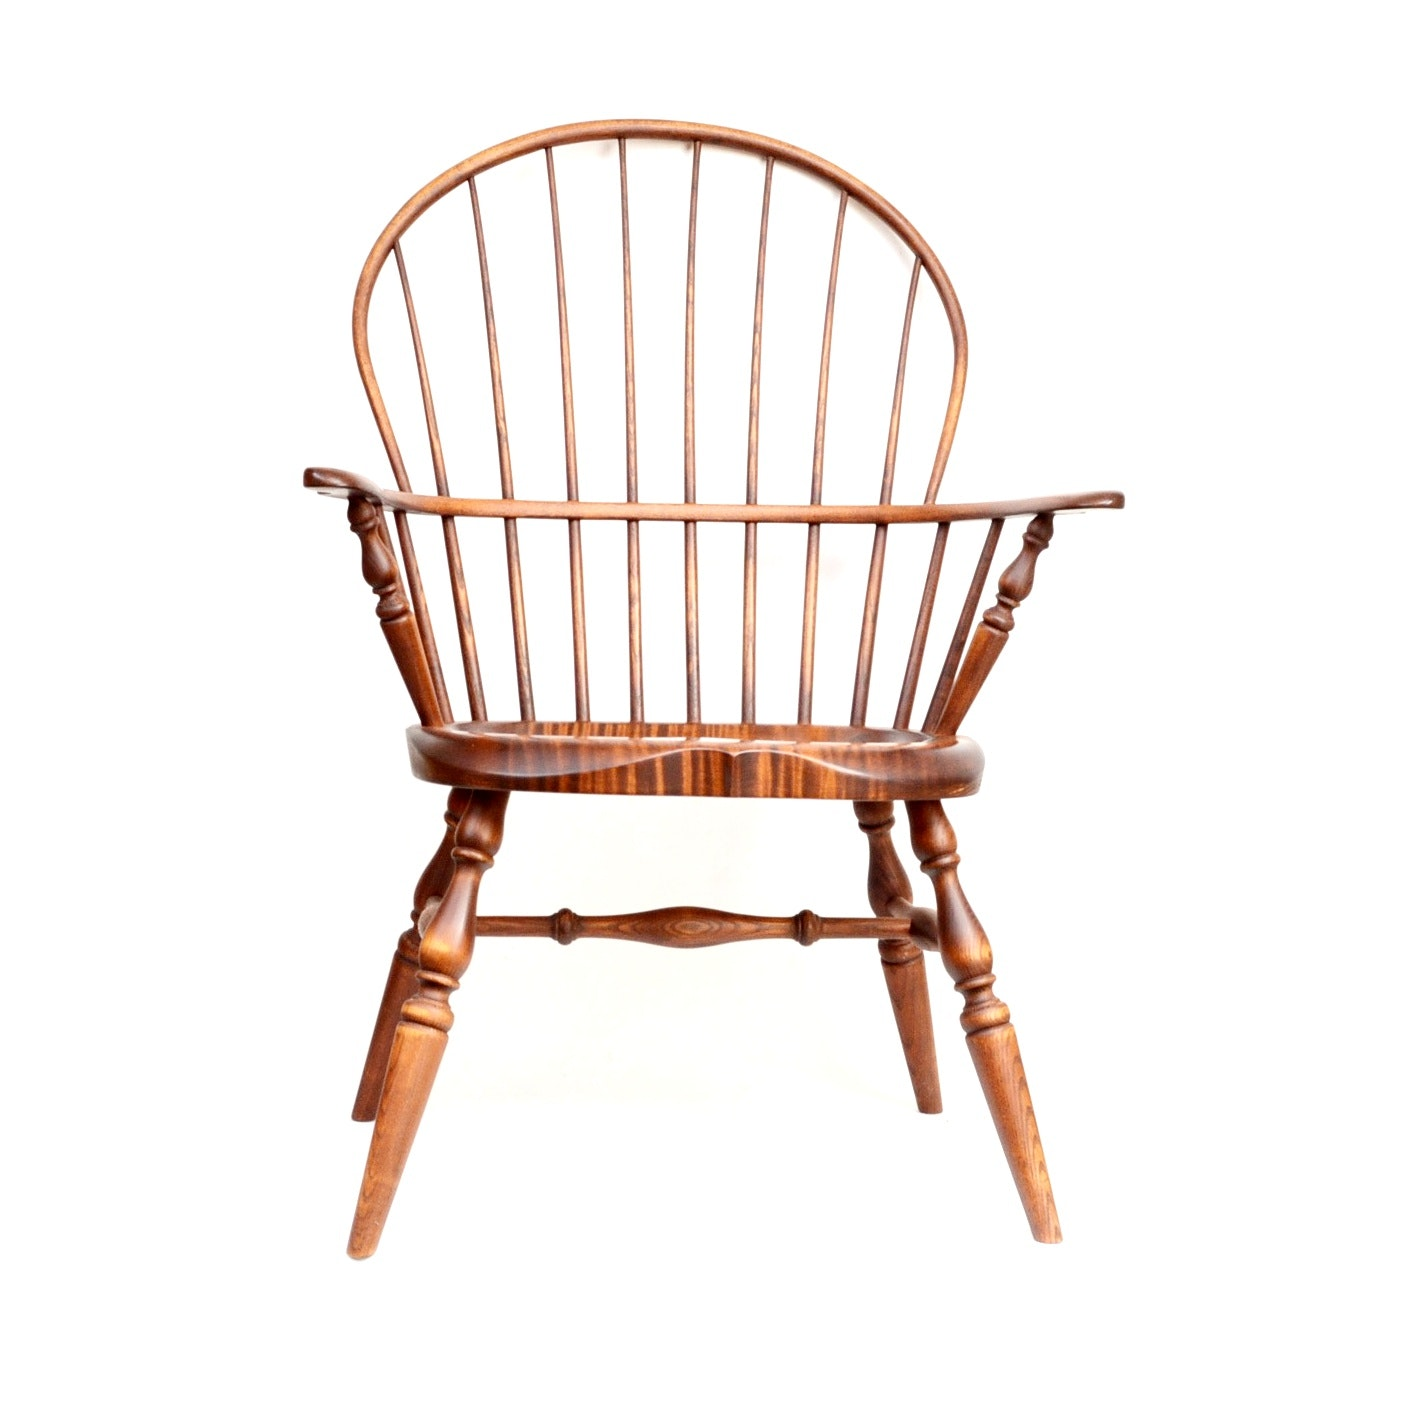 Hand Crafted Windsor Chair  by J. Brown of Maine